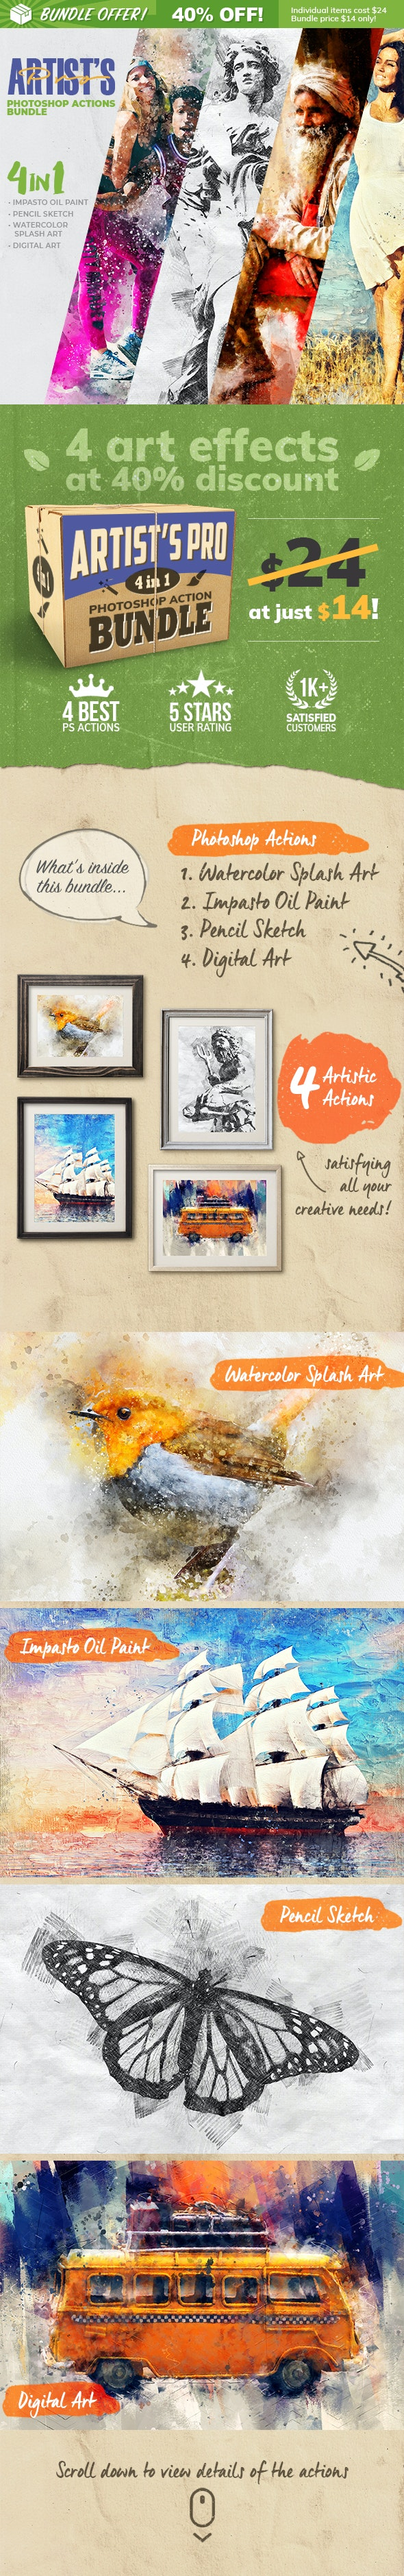 4-in-1 Artist's Pro Photoshop Action Bundle - Photo Effects Actions